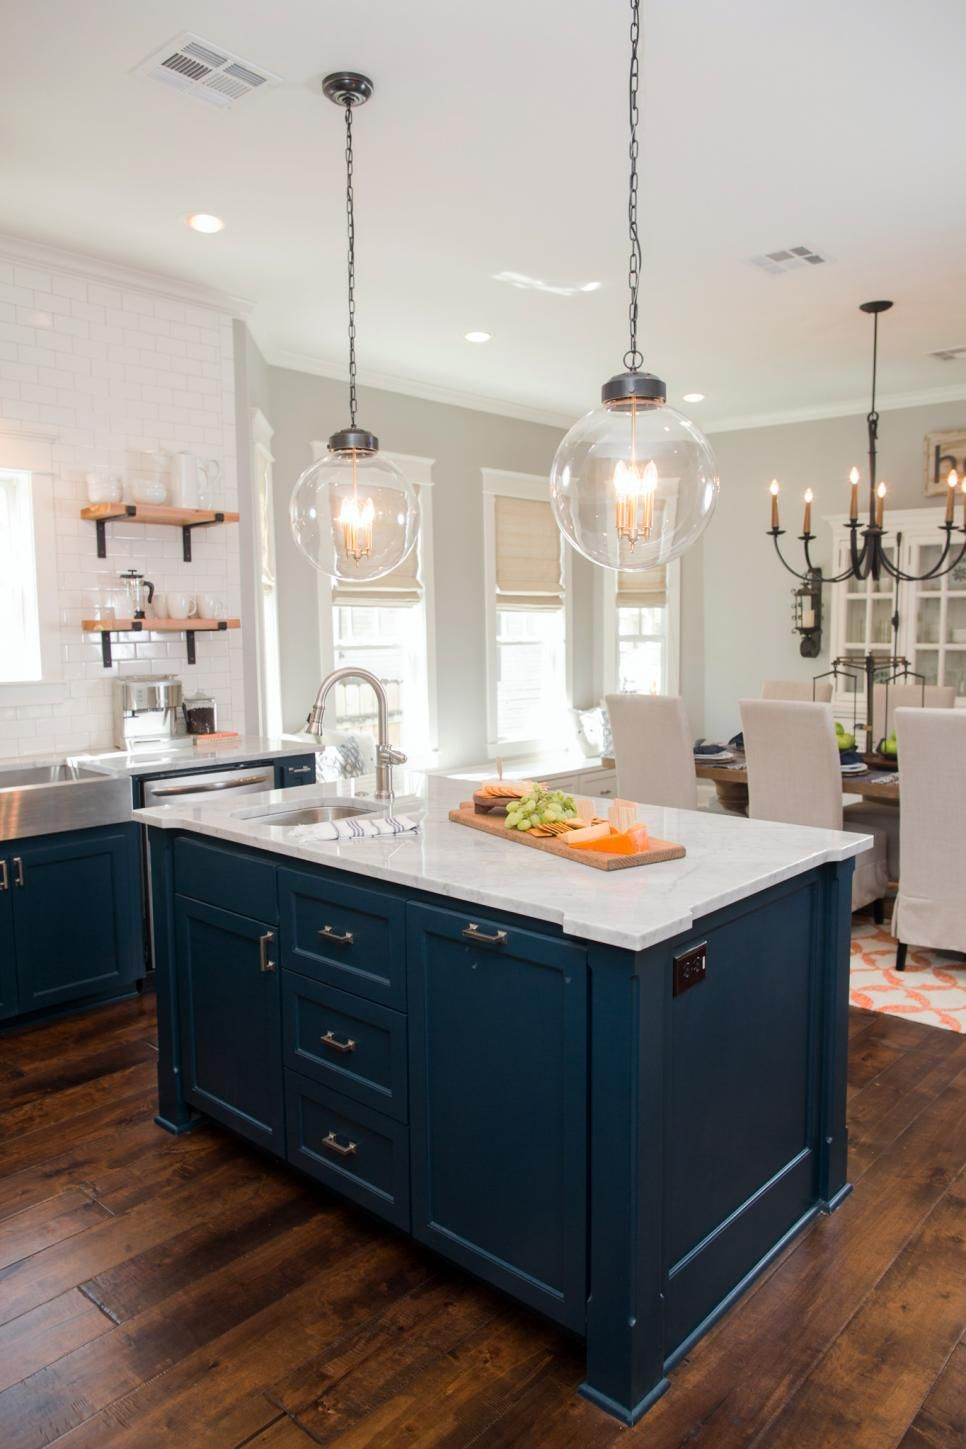 Fixer upper craftsman kitchen - Chip And Joanna Gaines Undertake An Ambitious Makeover On A Century Old Home For A